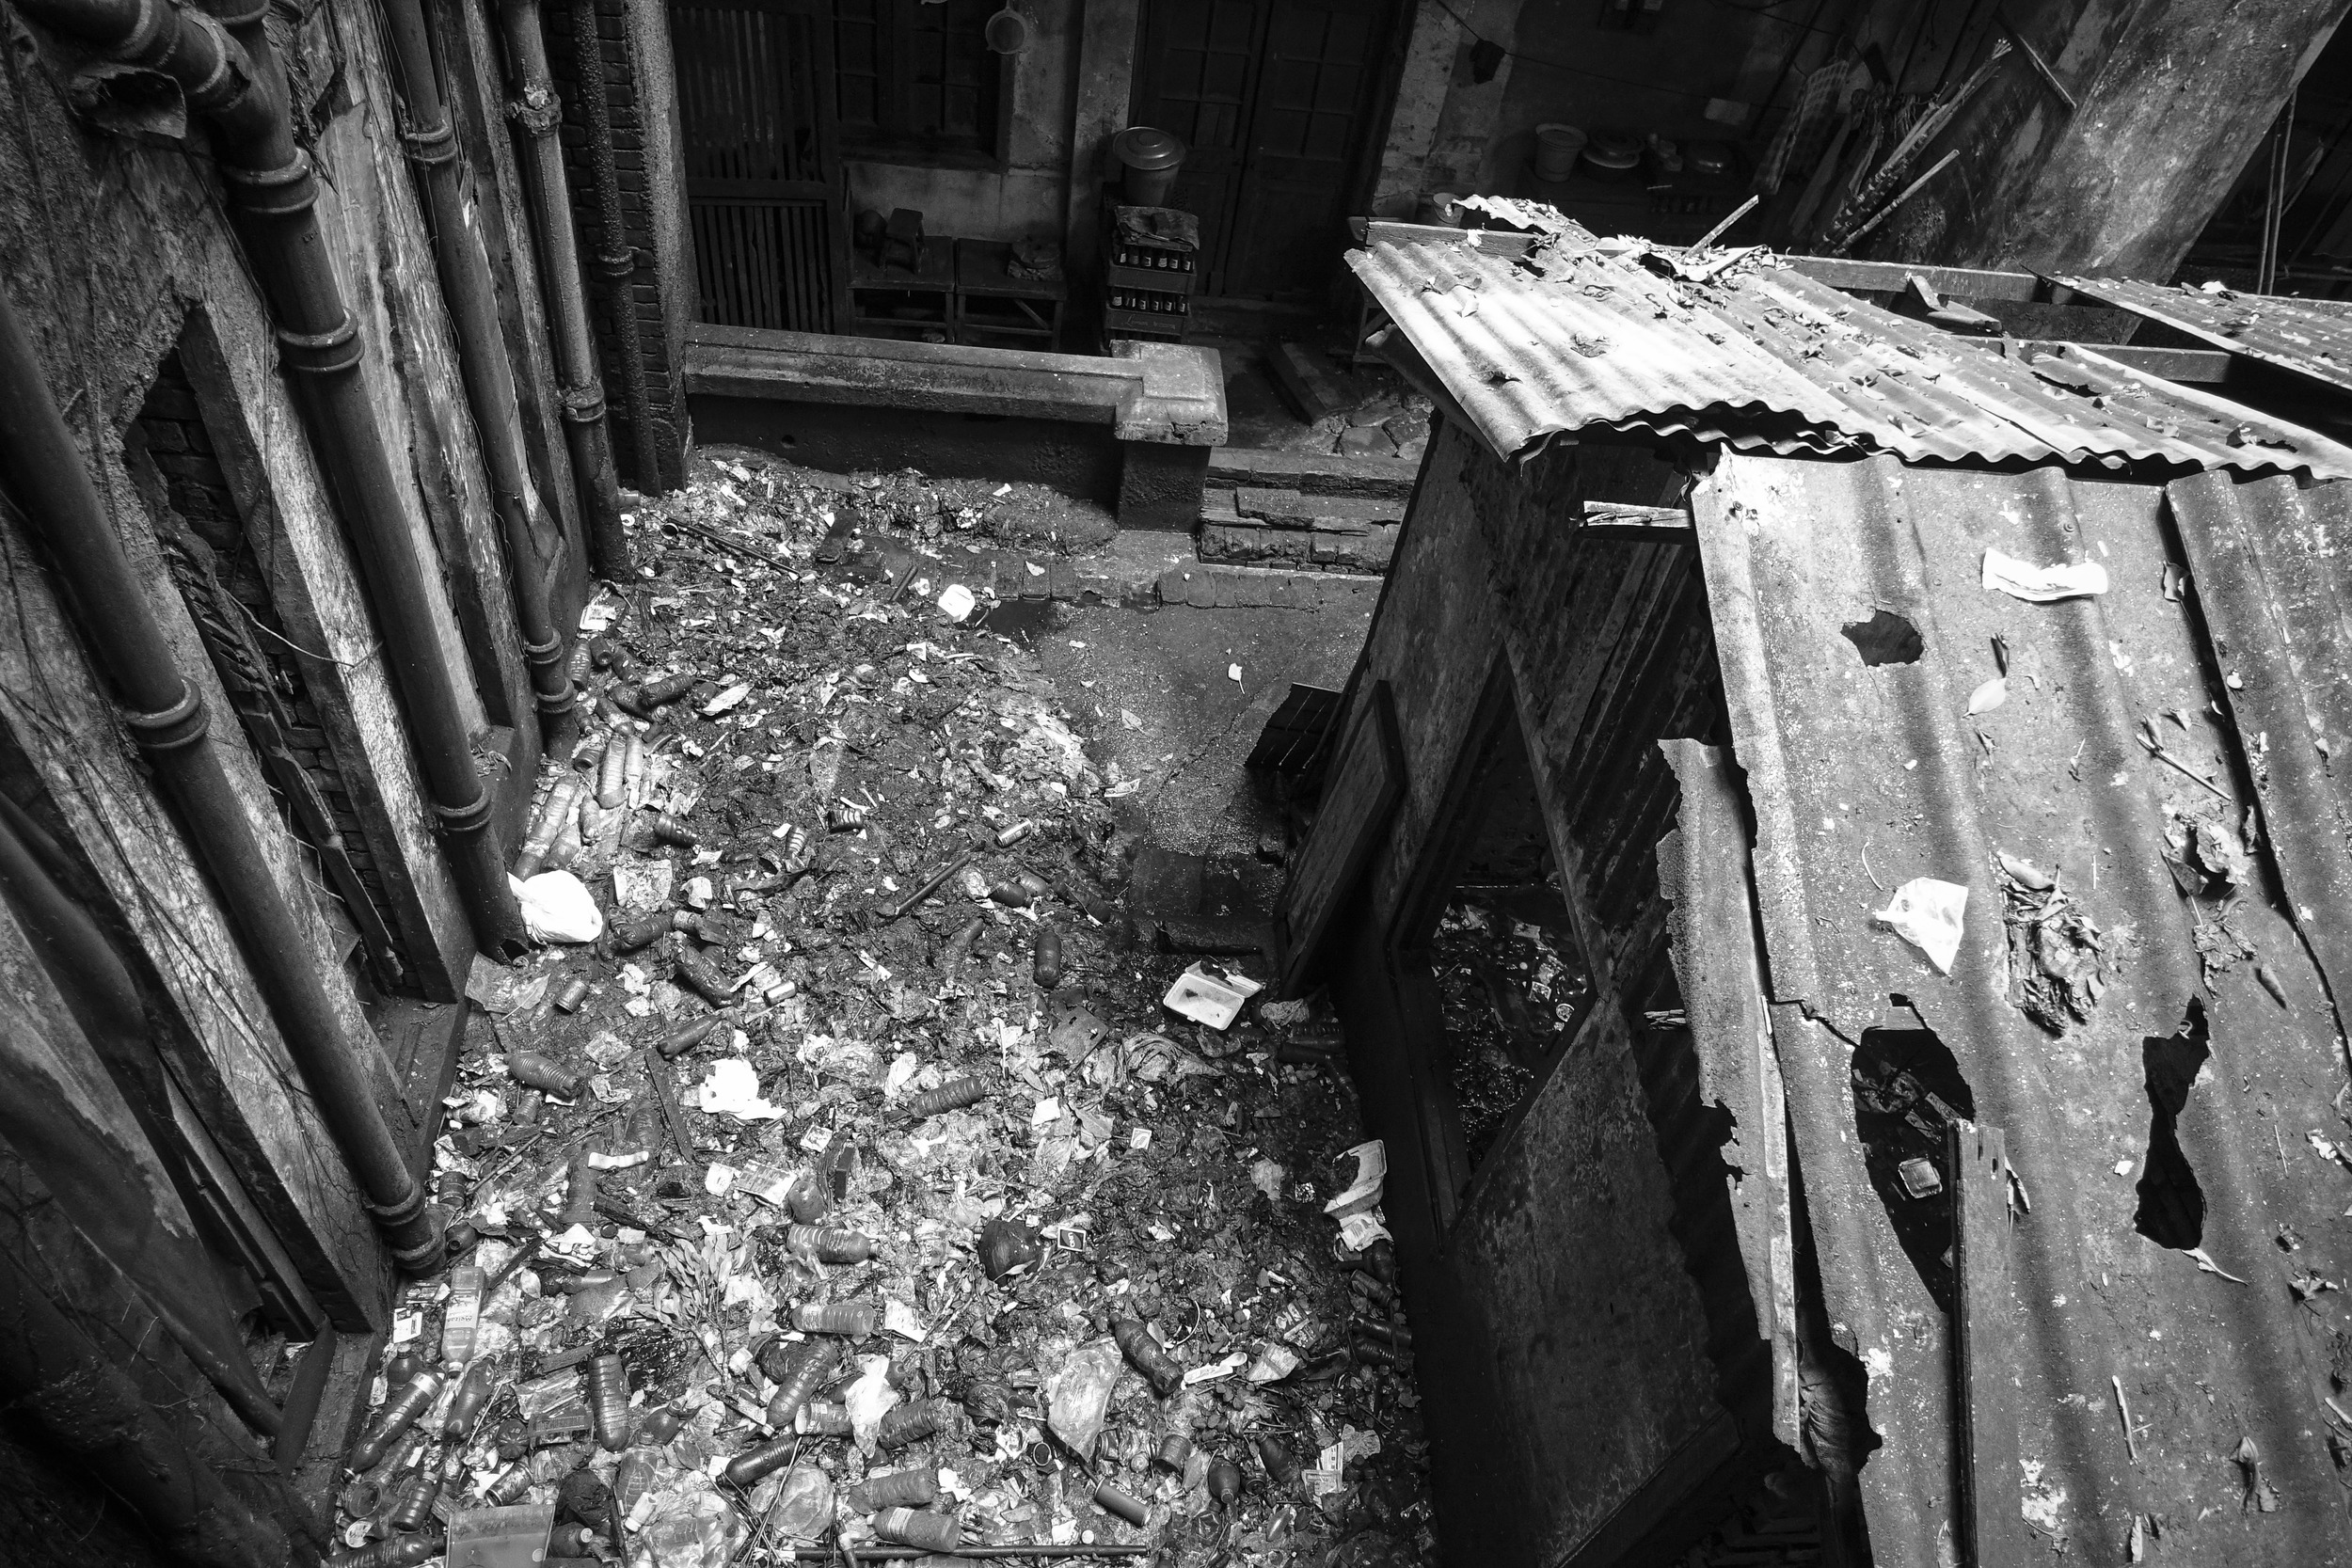 The building is possibly too far gone to be restored. A broken-down shack occupies the interior courtyard, surrounded by a moat of trash.